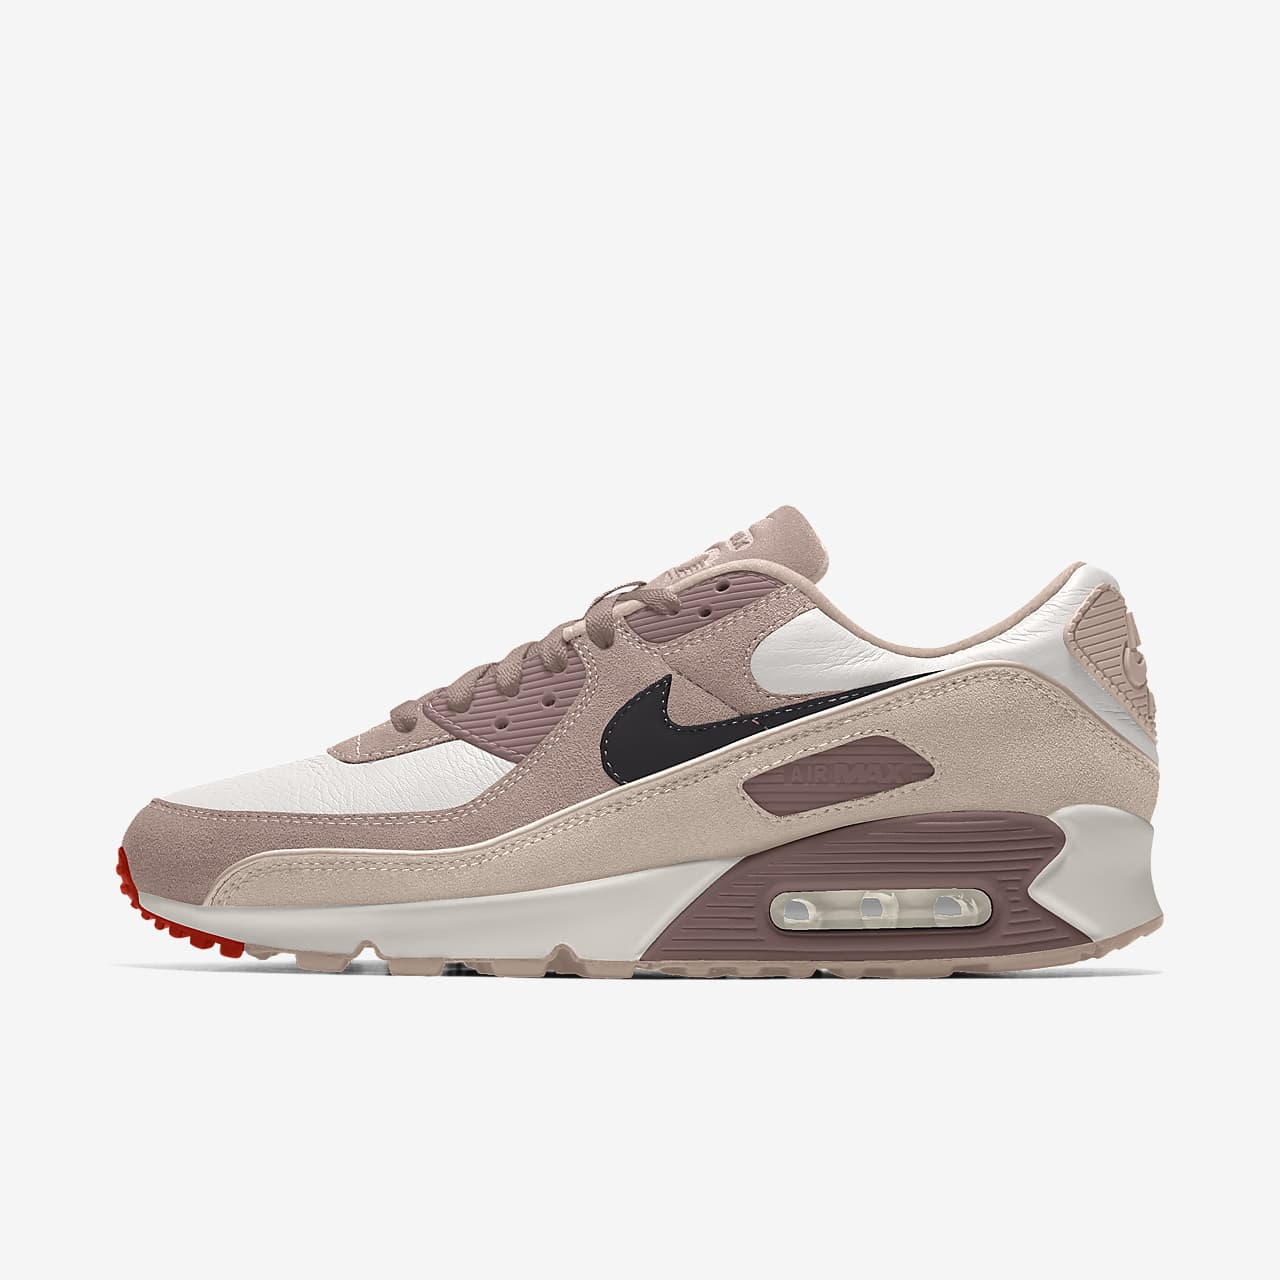 Chaussure personnalisable Nike Air Max 90 Unlocked By You pour Femme